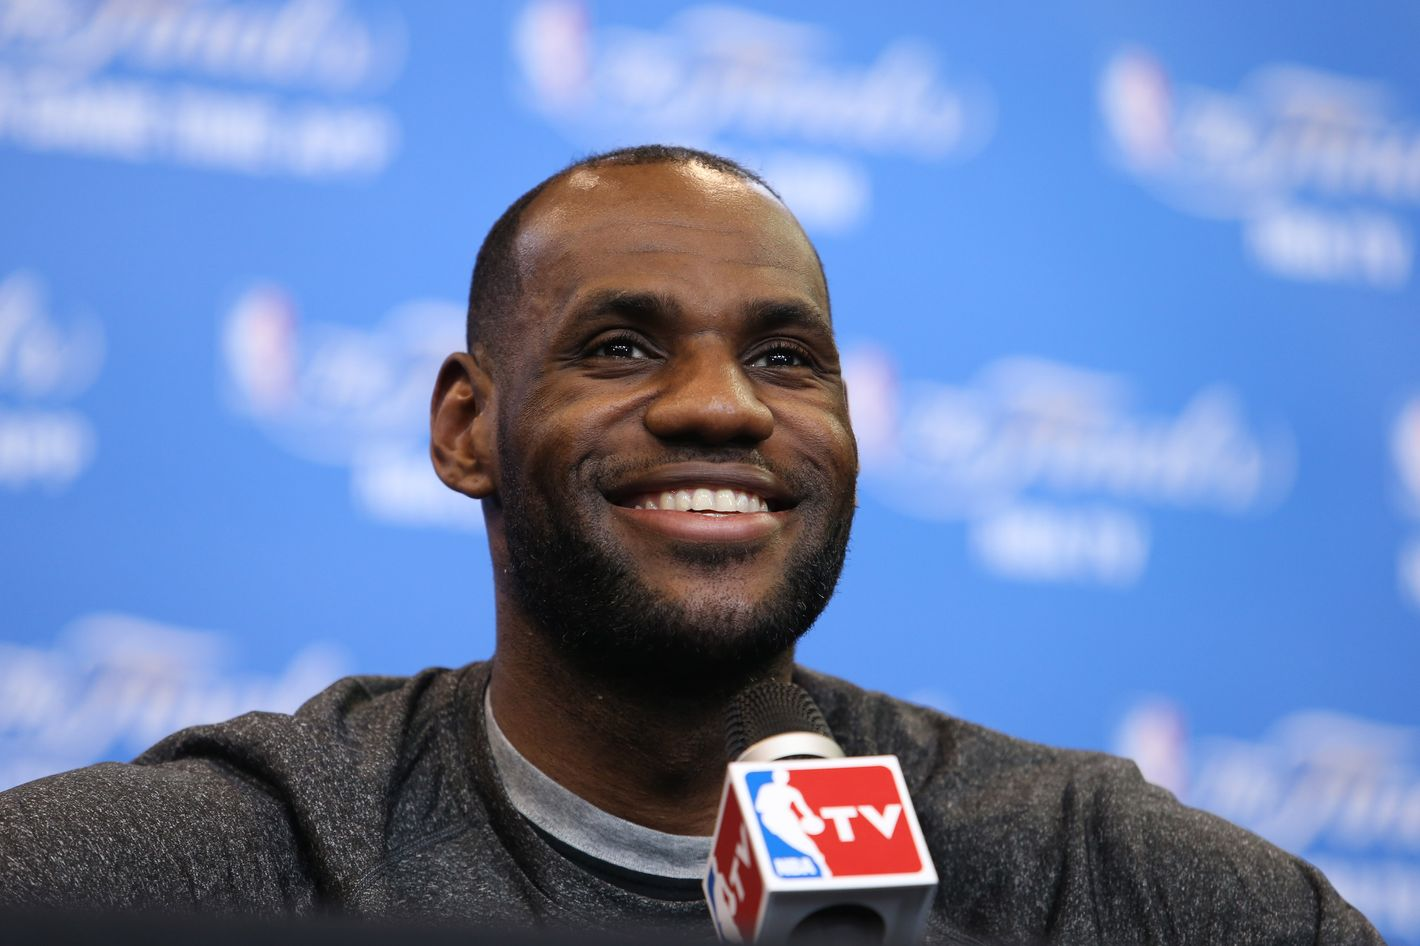 SAN ANTONIO, TX - JUNE 14: LeBron James of the Miami Heat addresses the media during media availability as part of the 2014 NBA Finals on June 14, 2014 at the Spurs Practice Facility in San Antonio, Texas. NOTE TO USER: User expressly acknowledges and agrees that, by downloading and or using this photograph, User is consenting to the terms and conditions of the Getty Images License Agreement. Mandatory Copyright Notice: Copyright 2014 NBAE (Photo by Joe Murphy/NBAE via Getty Images)